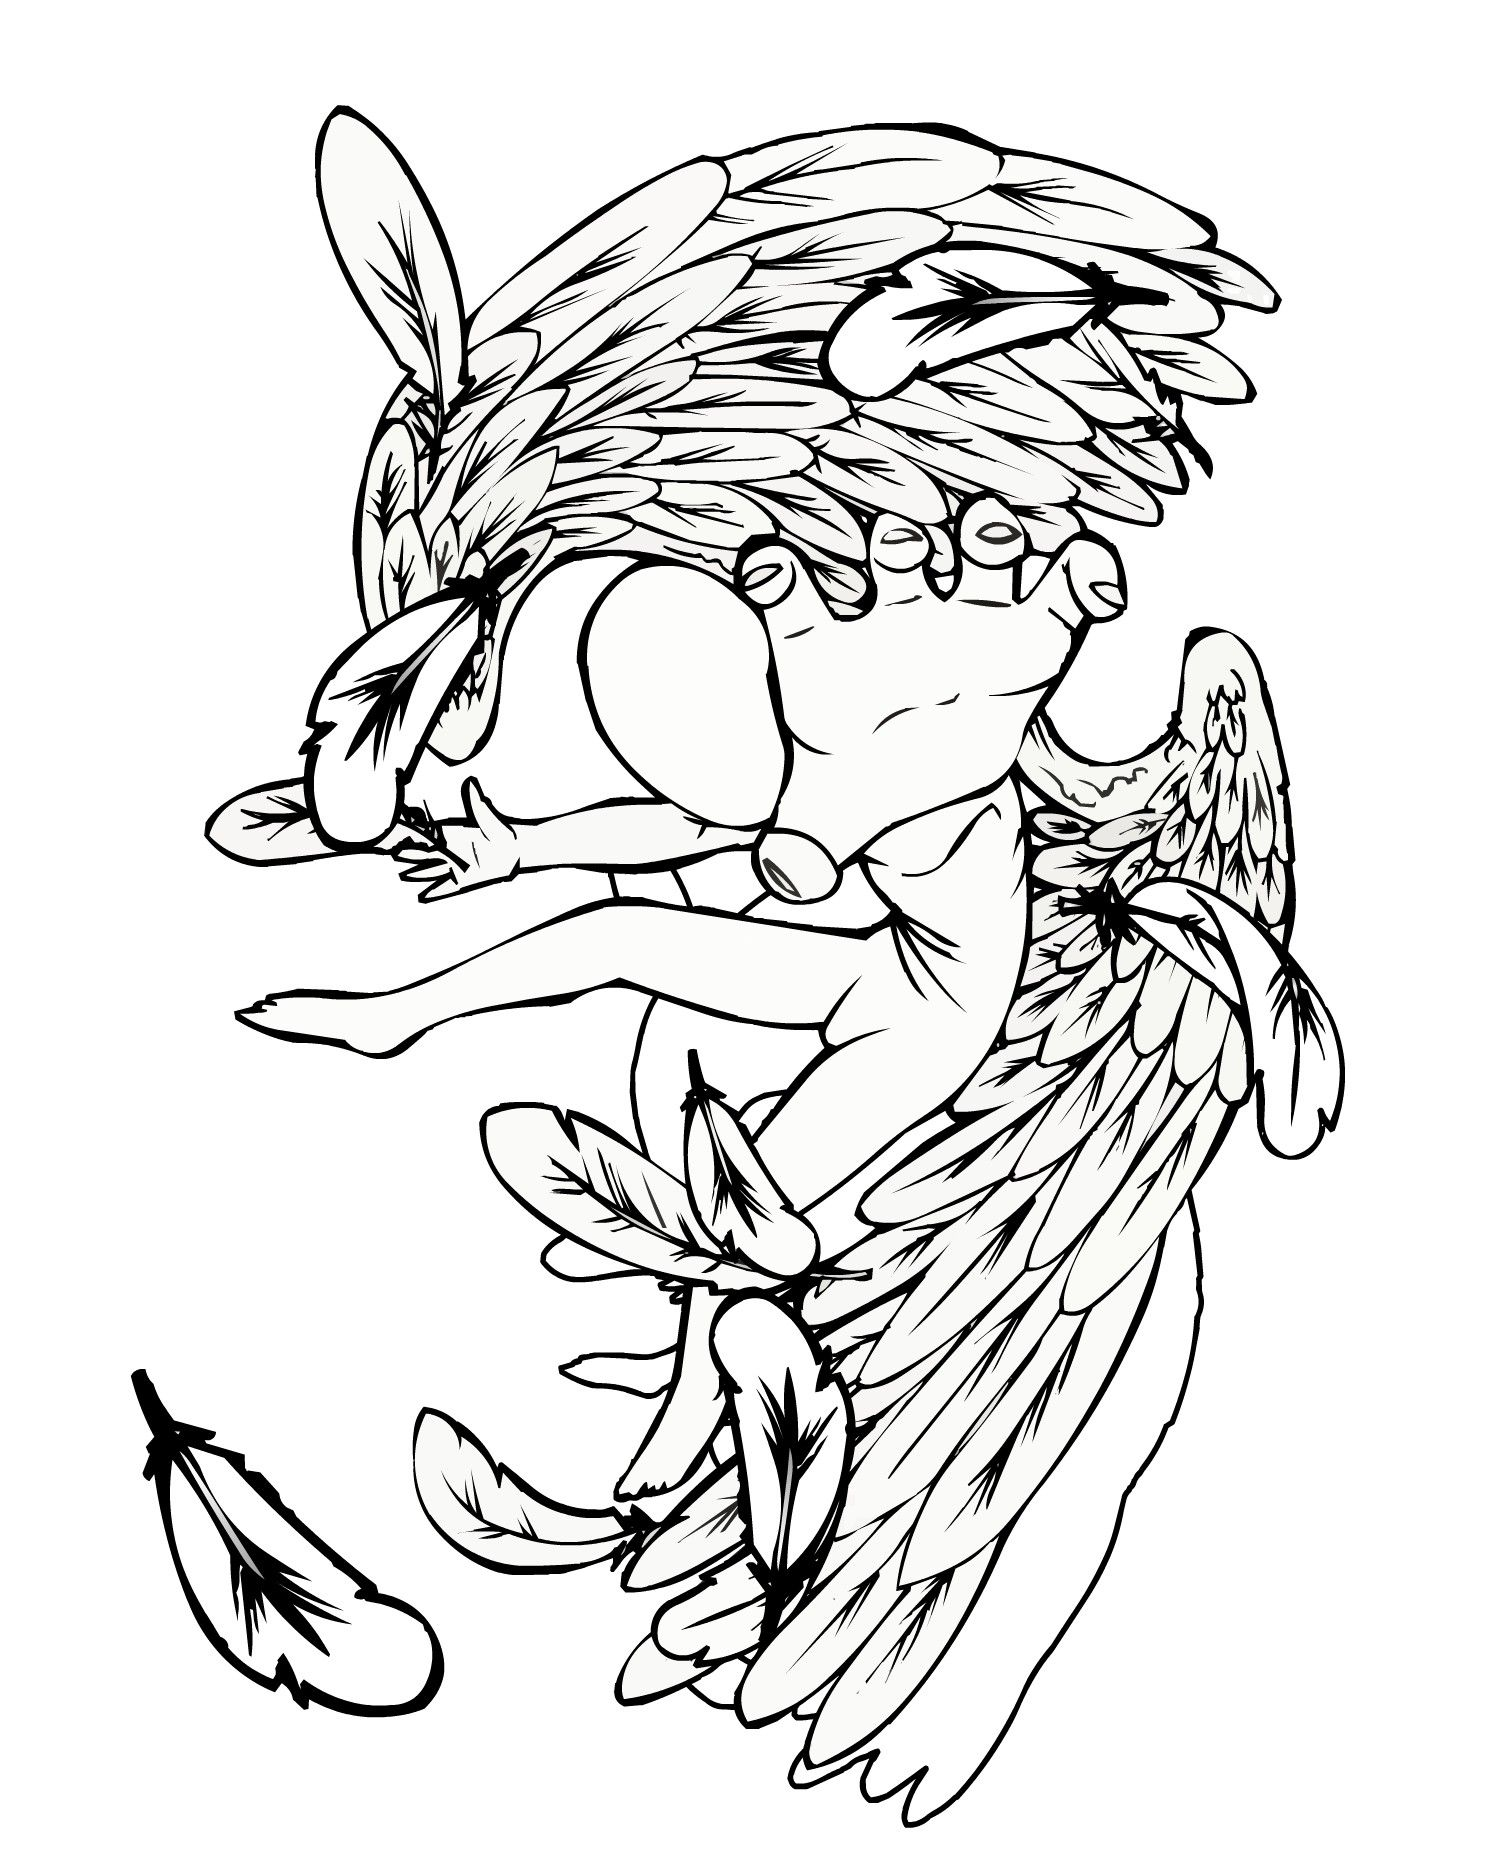 Tattoo designs tumblr by Uniquecustomshowclothesdesigns on